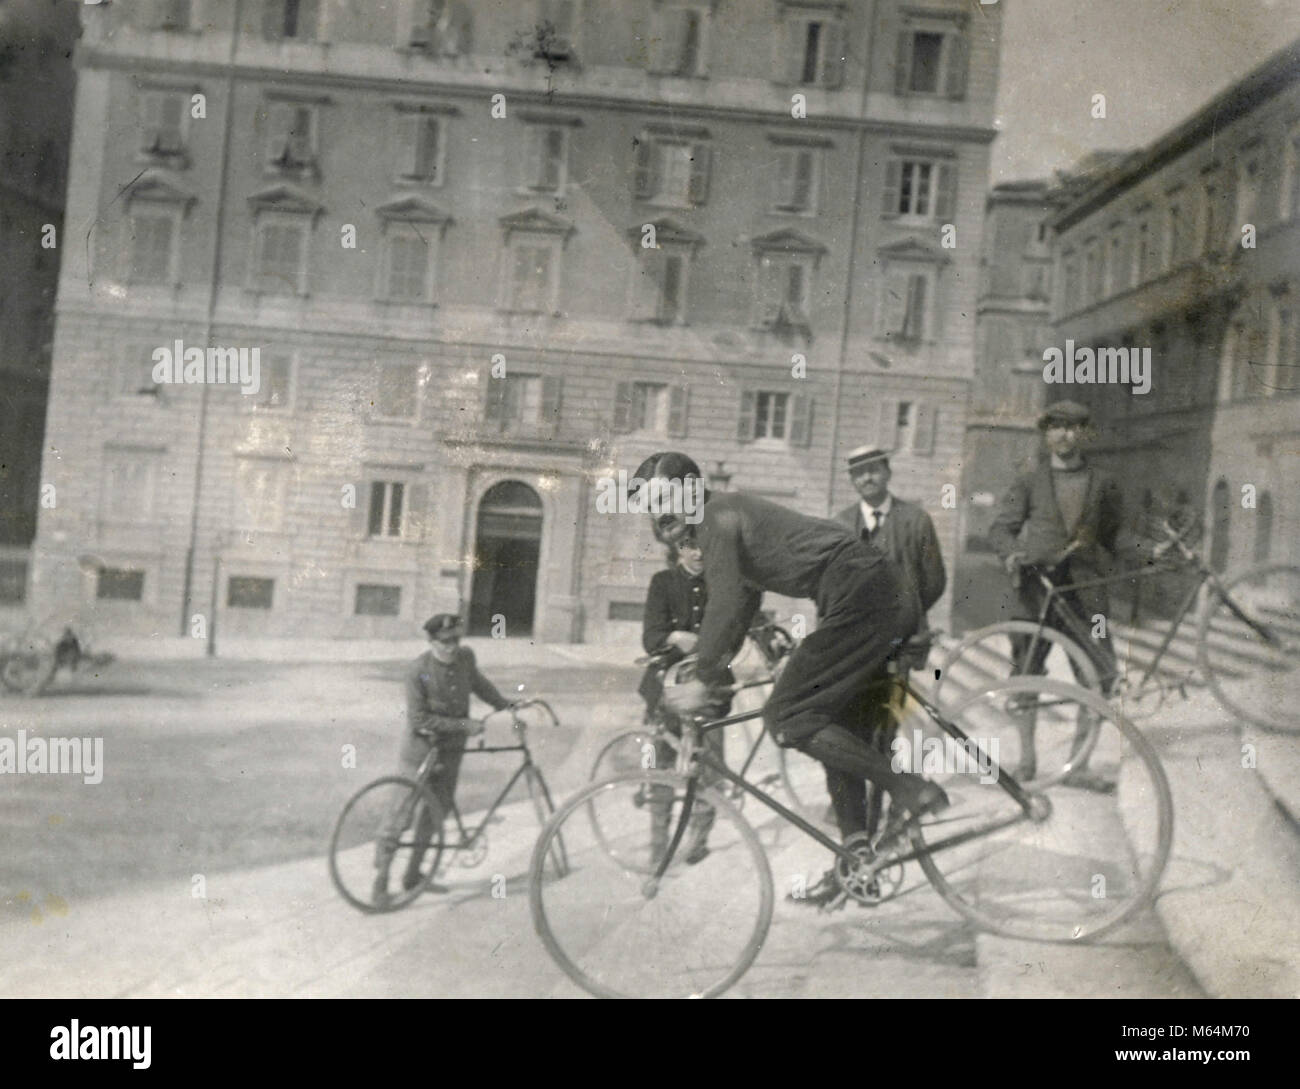 Descending the stairway with the bike, Italy 1910s - Stock Image